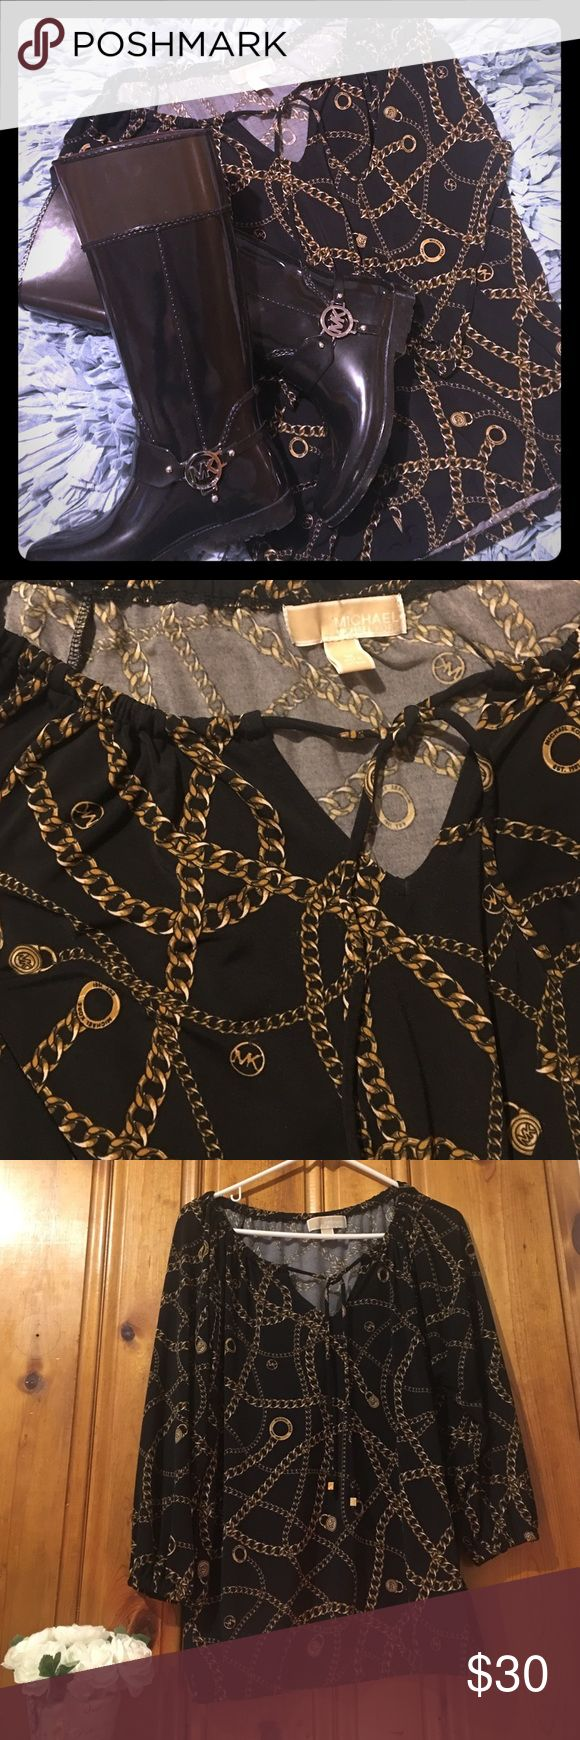 Michael Kors blouse Black and gold blouse. Super classy and looks amazing with skinny jeans and boots. Nice flowy loose fit. Michael Kors Tops Blouses